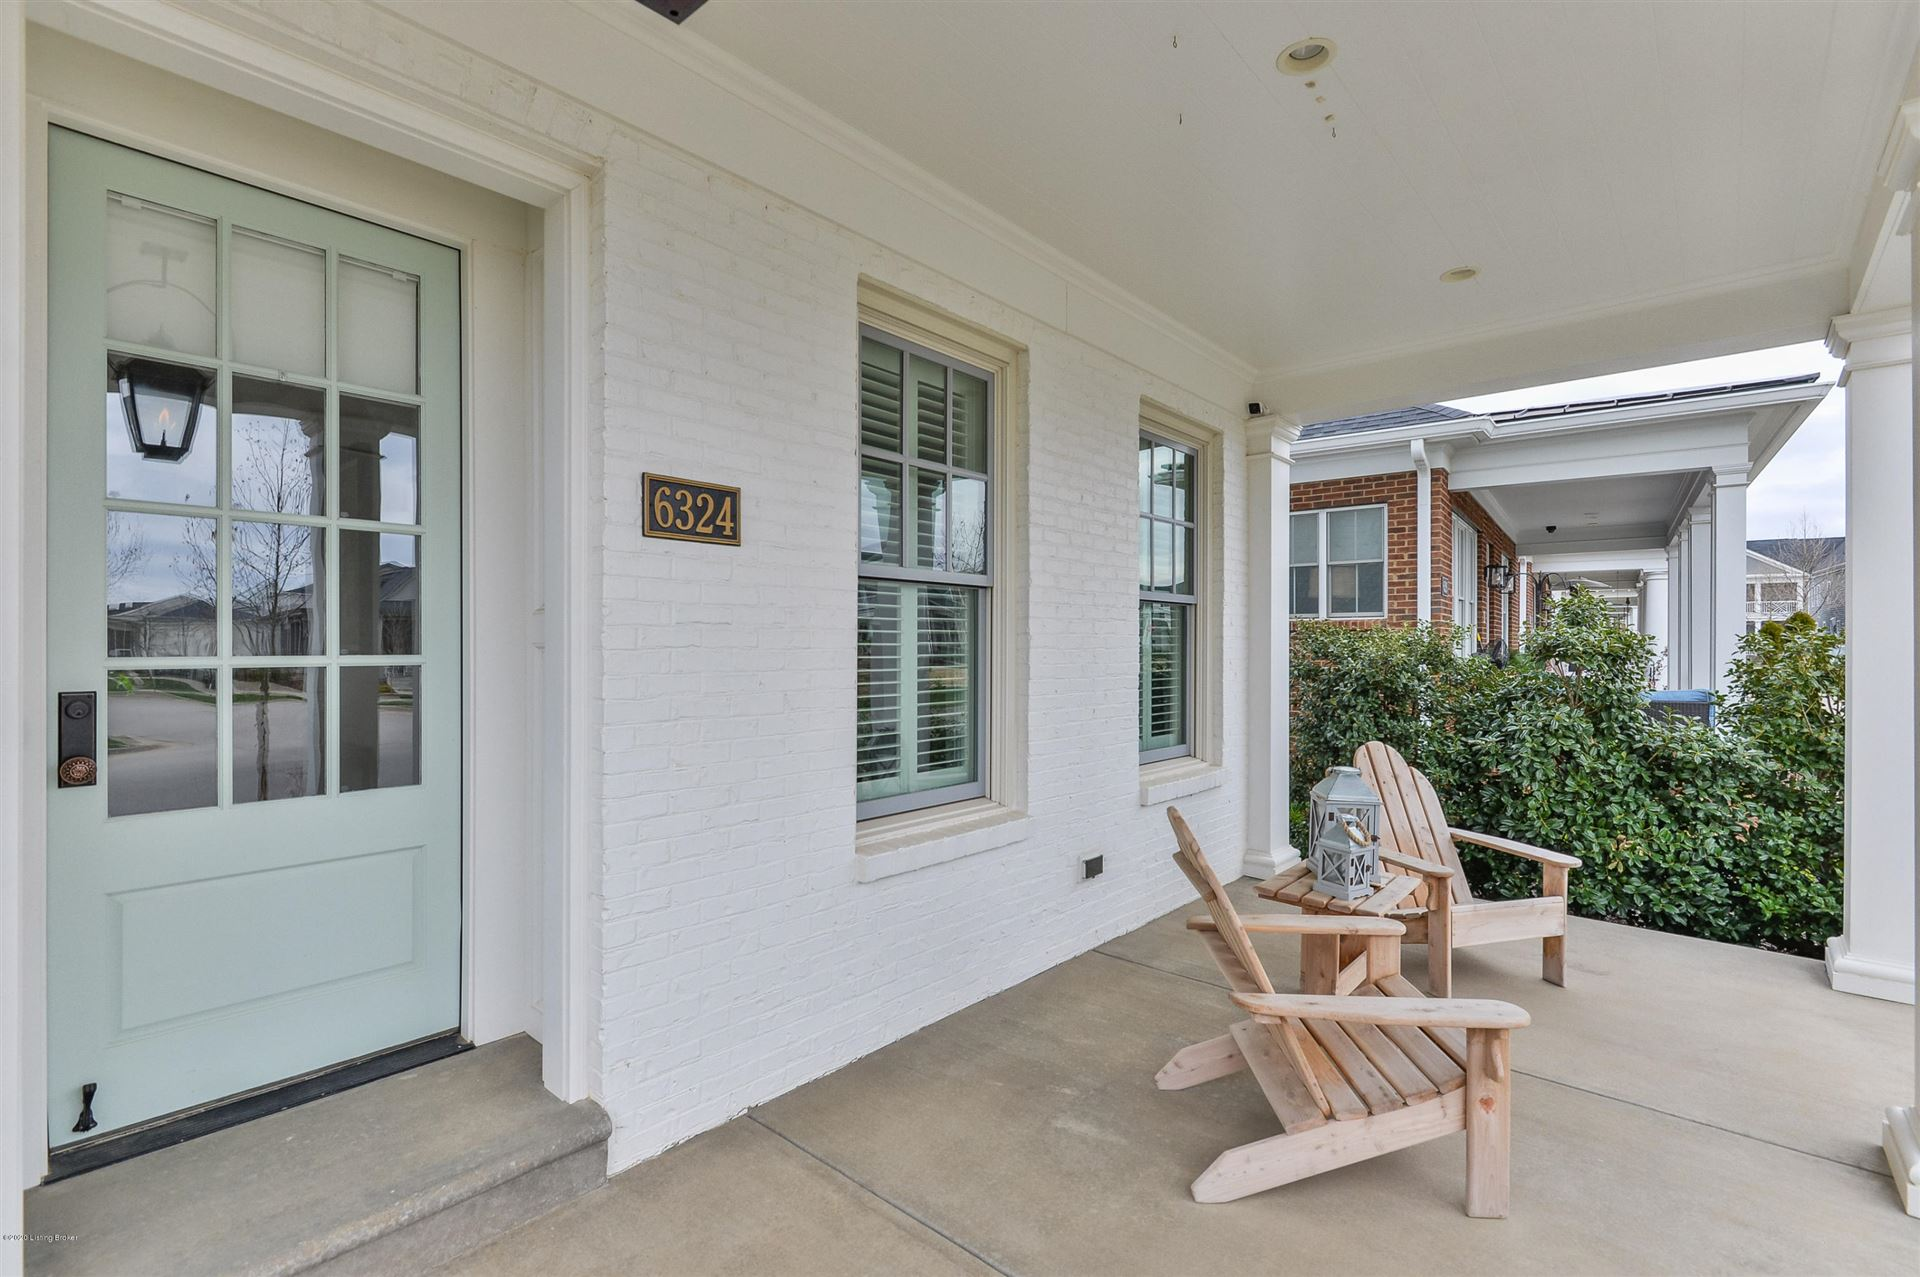 Property Image Of 6324 Moonseed St In Prospect, Ky